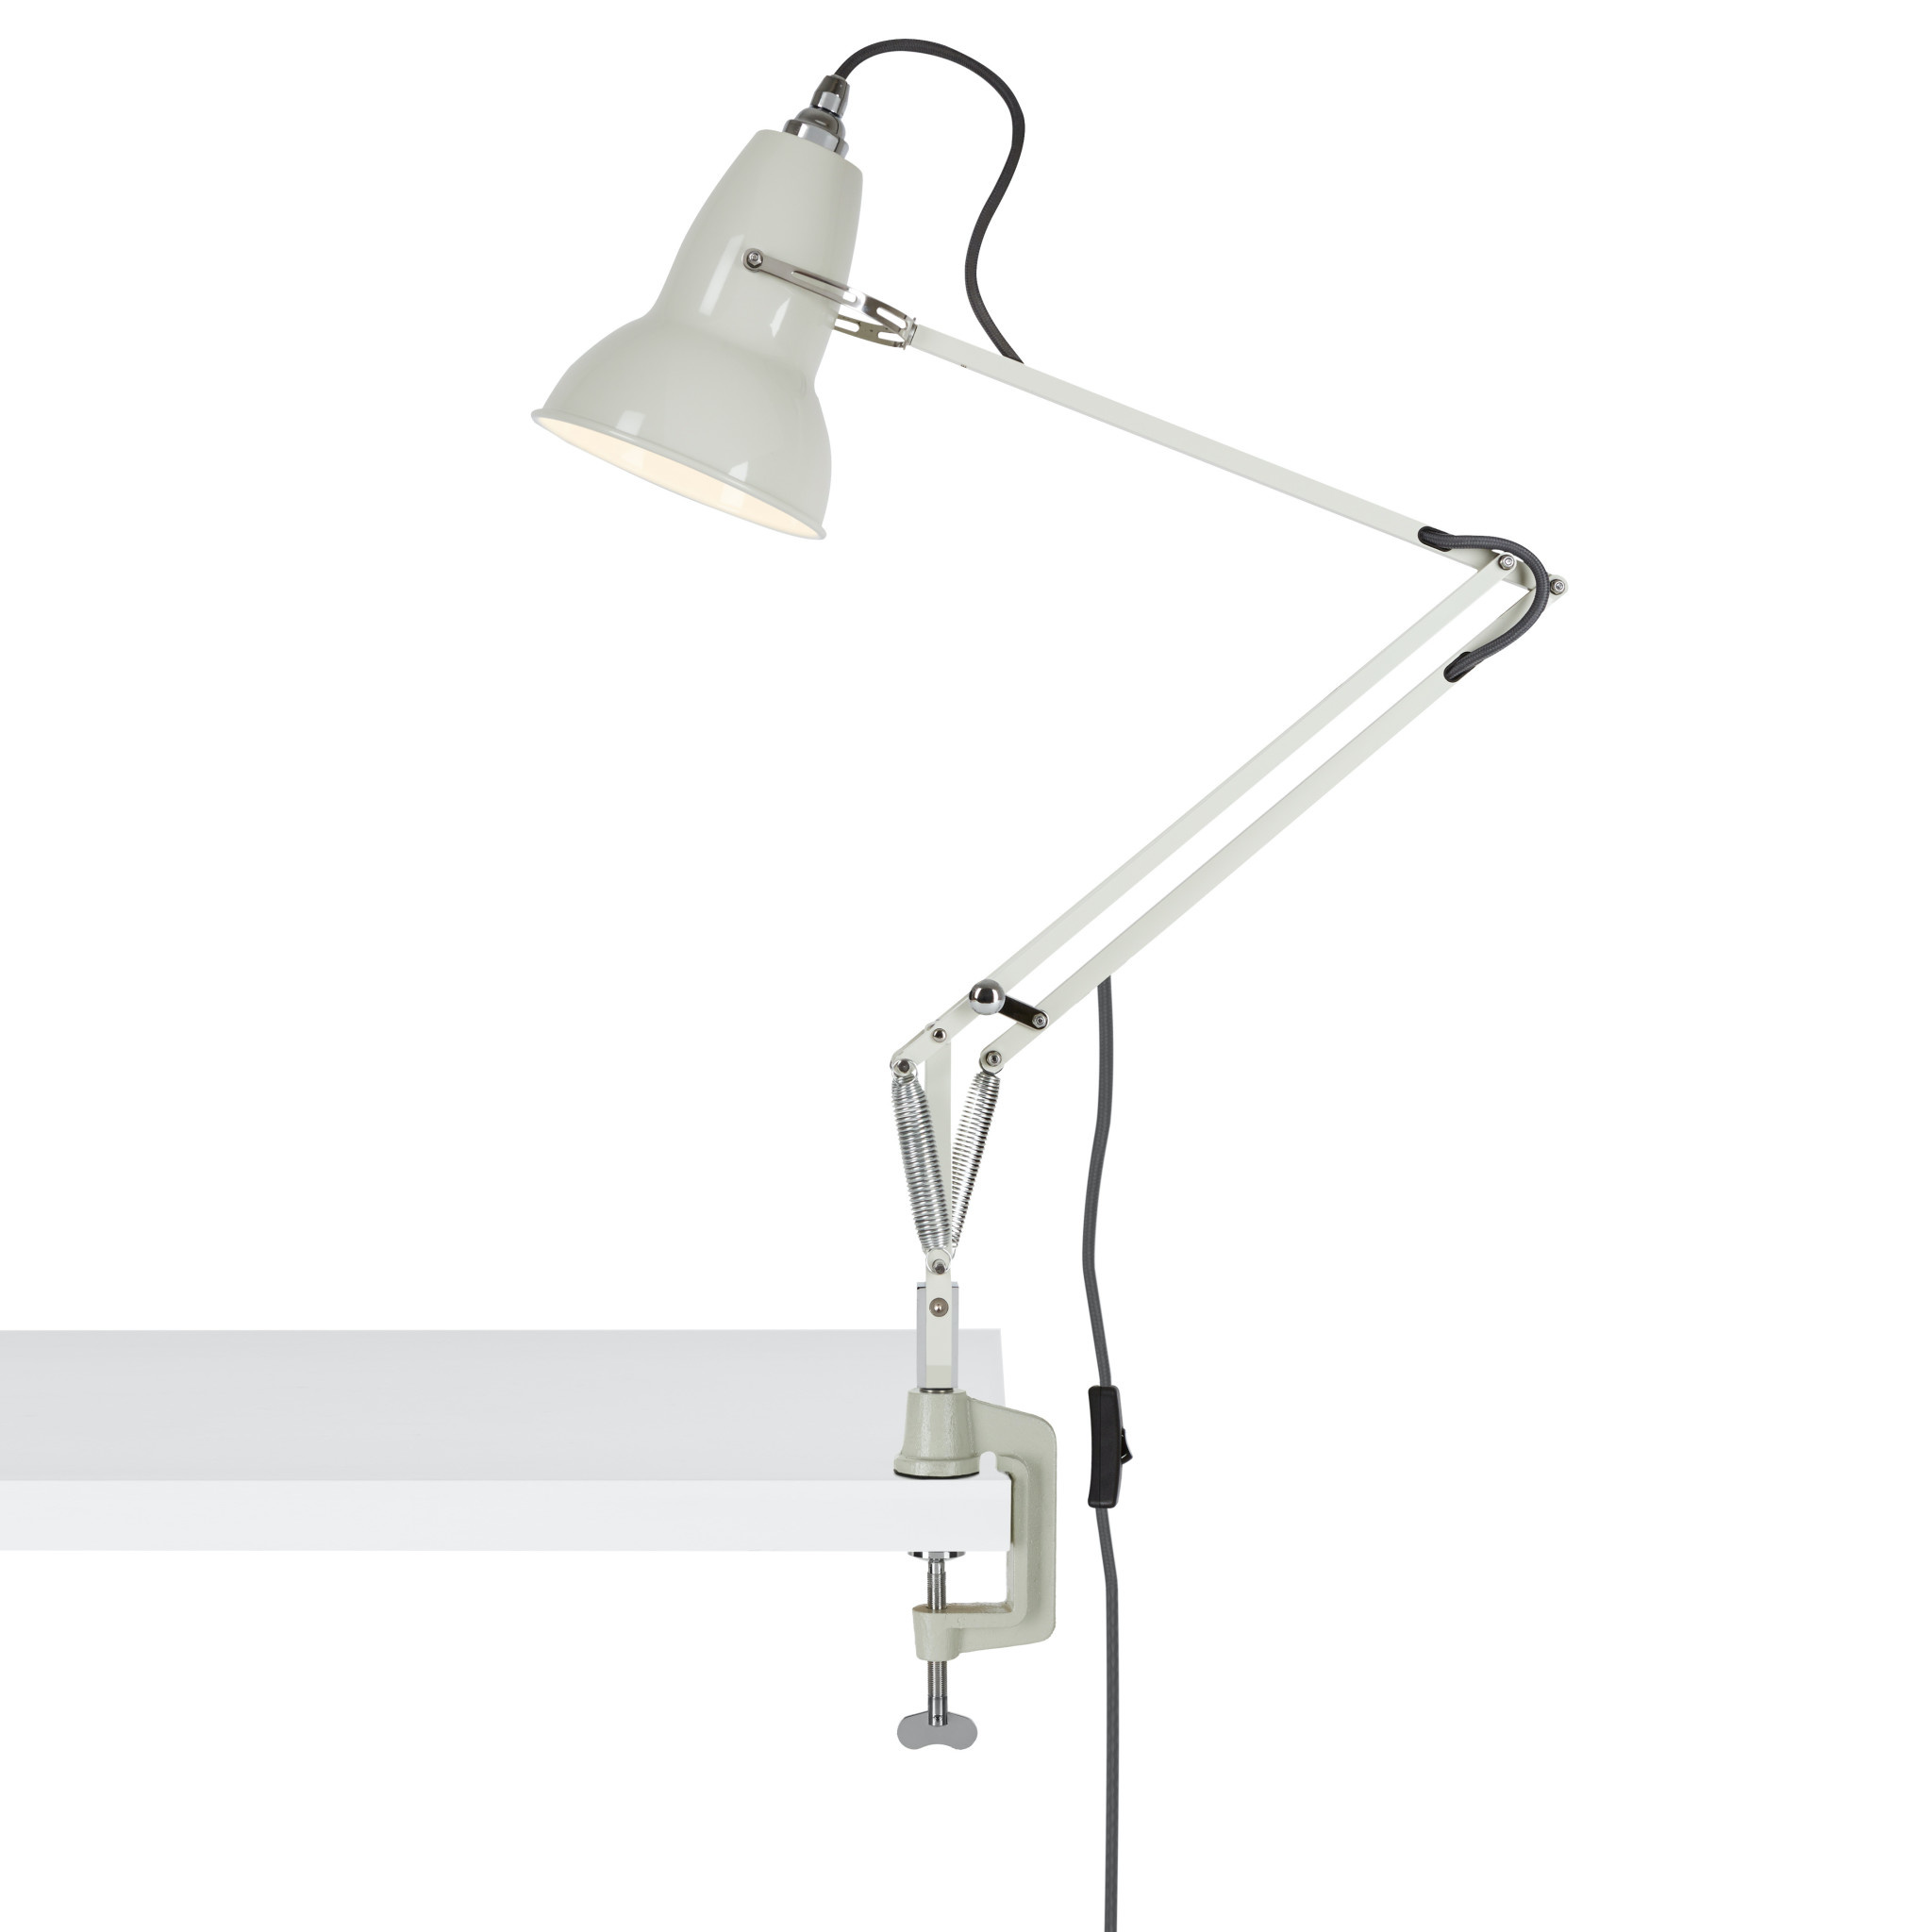 Anglepoise PREORDER Desk Mount Clamp for Original 1227 Series Lamps - Linen White